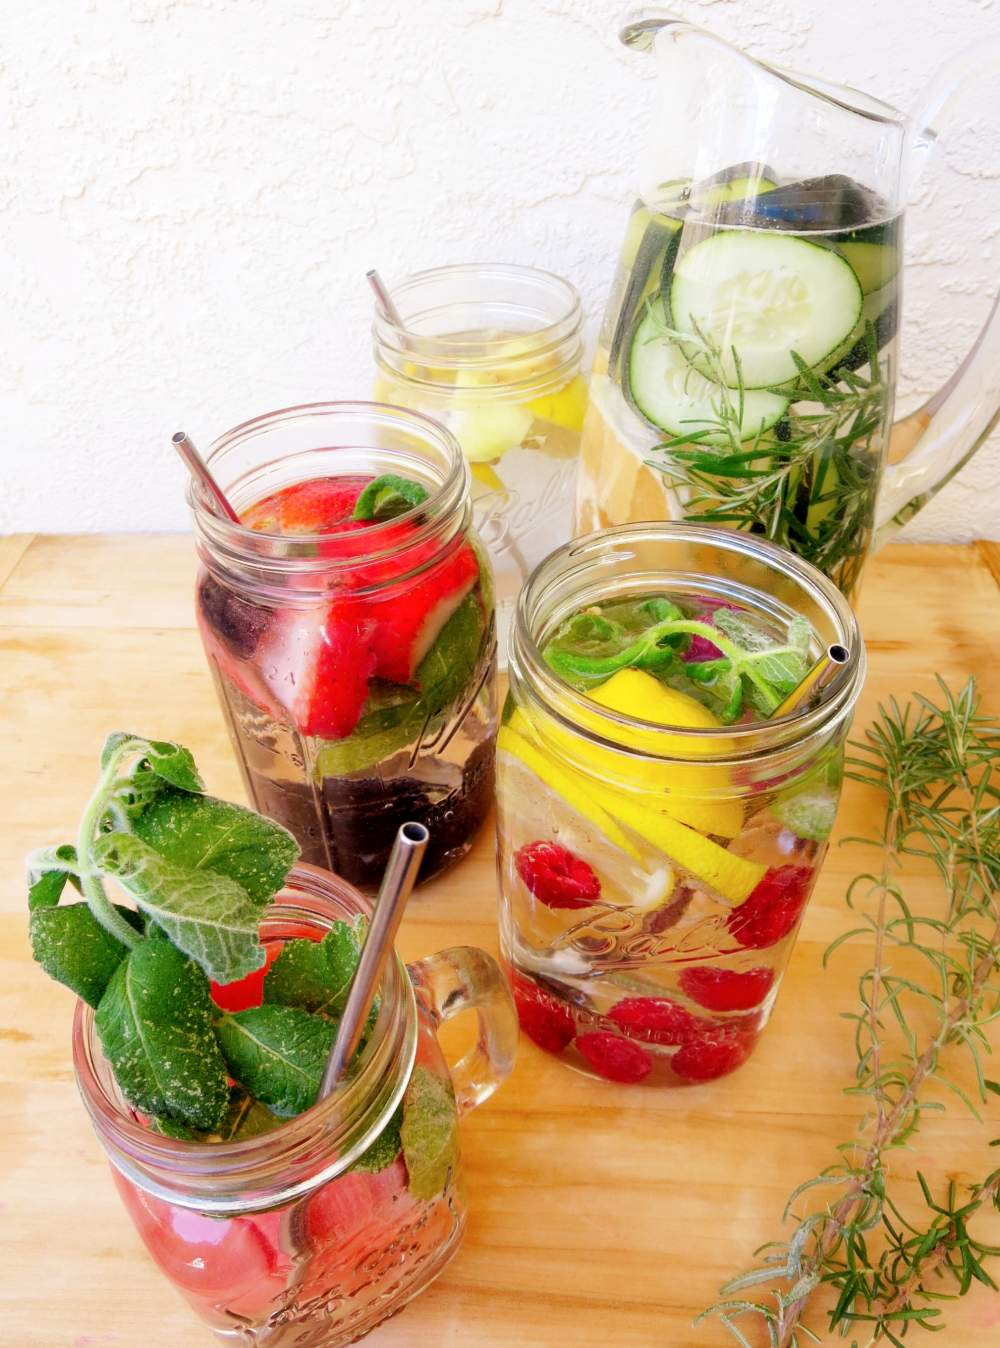 Fruit Tea. Exotic Fruit tea is enough to make anyone fall in love with the feeling of summer. There are many benefits of drinking Fruit tea as it is jam-packed with assorted vitamins and minerals.